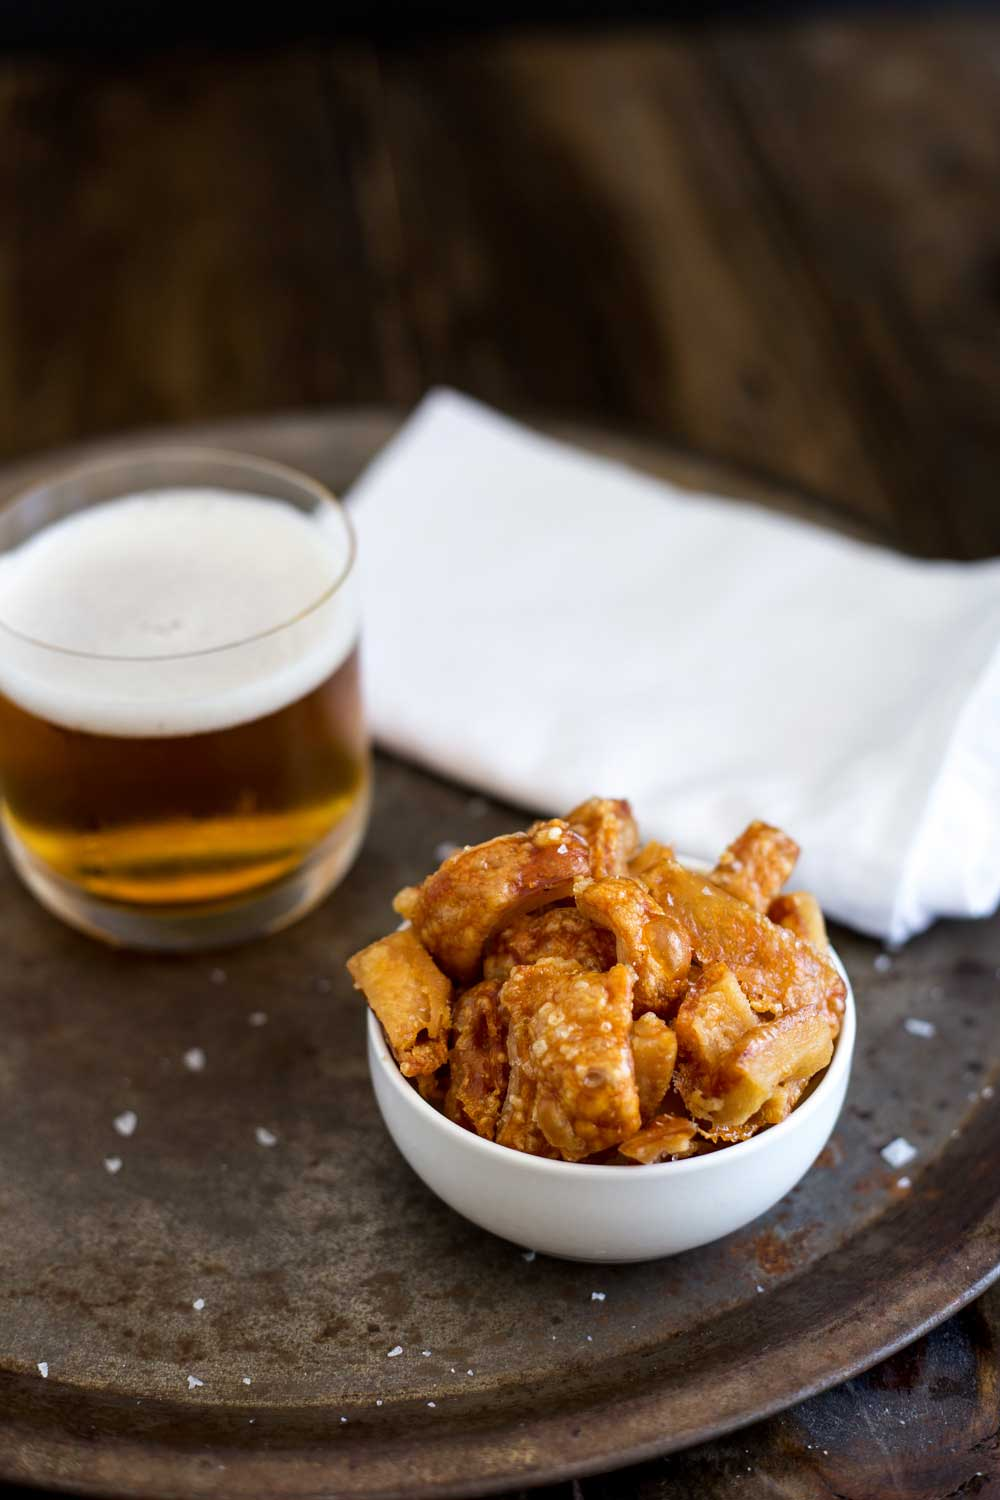 Metal tray with a beer, white napkin and a bowl of crackling bites.